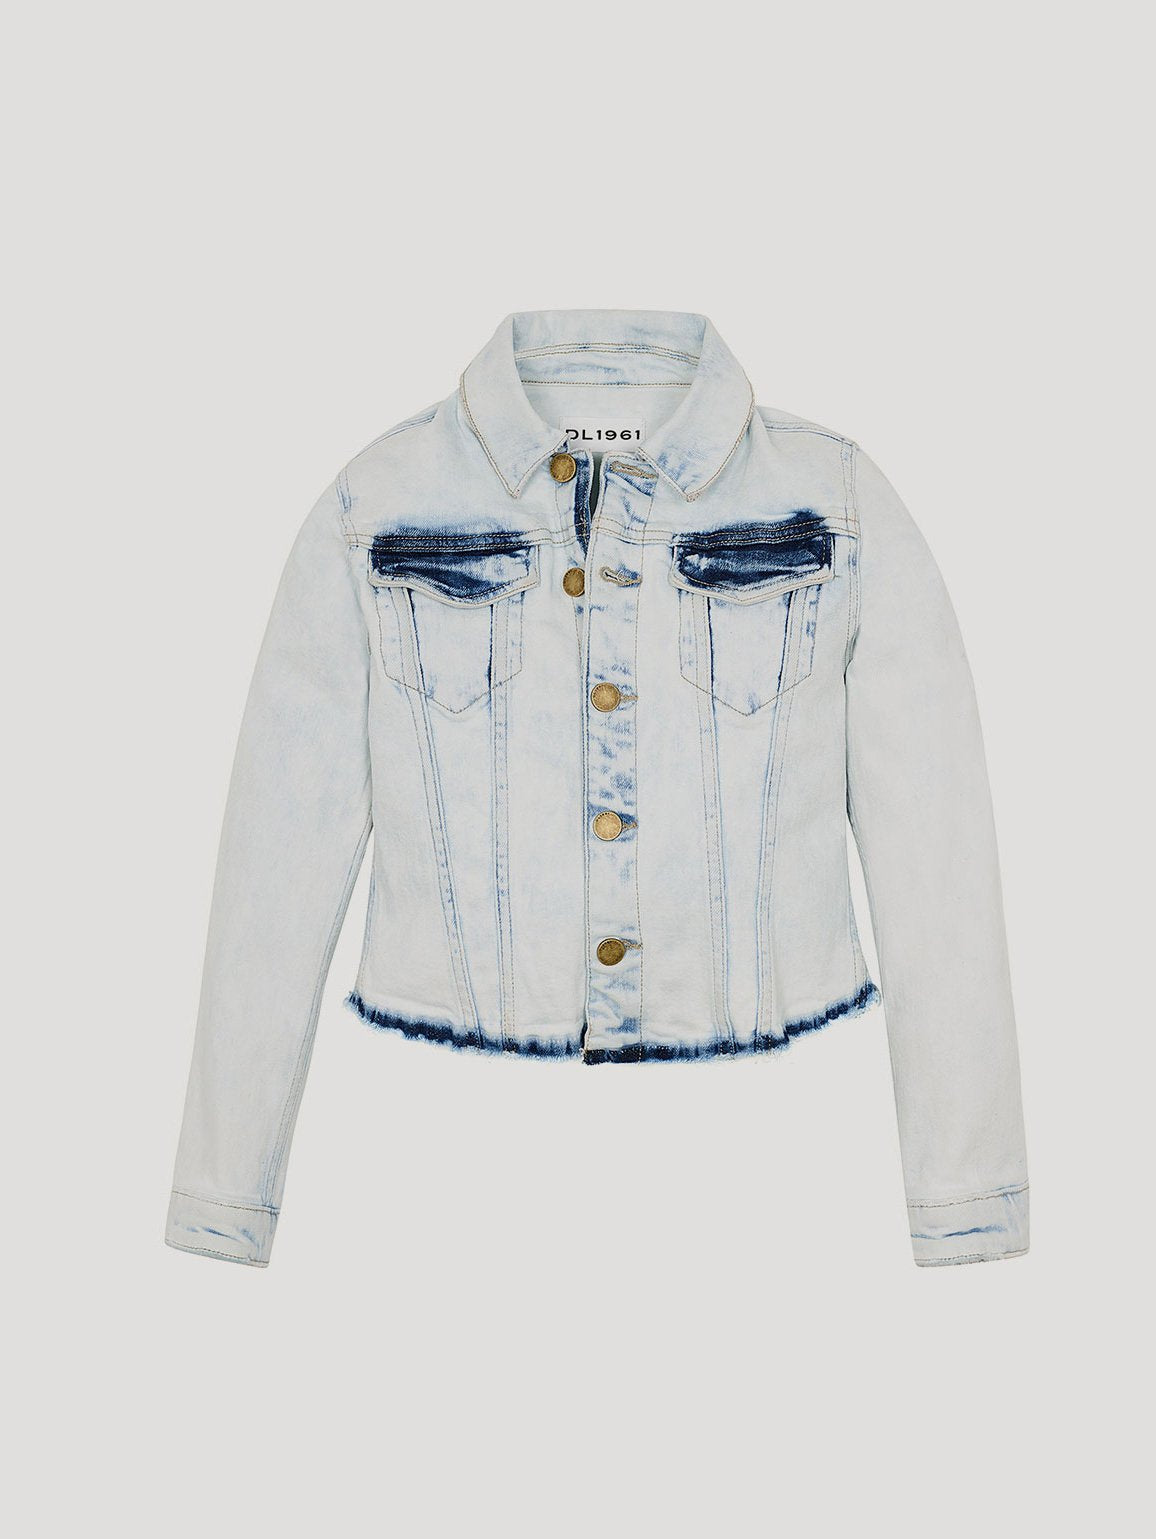 Toddler Jacket - Manning Jacket Studio City - DL1961